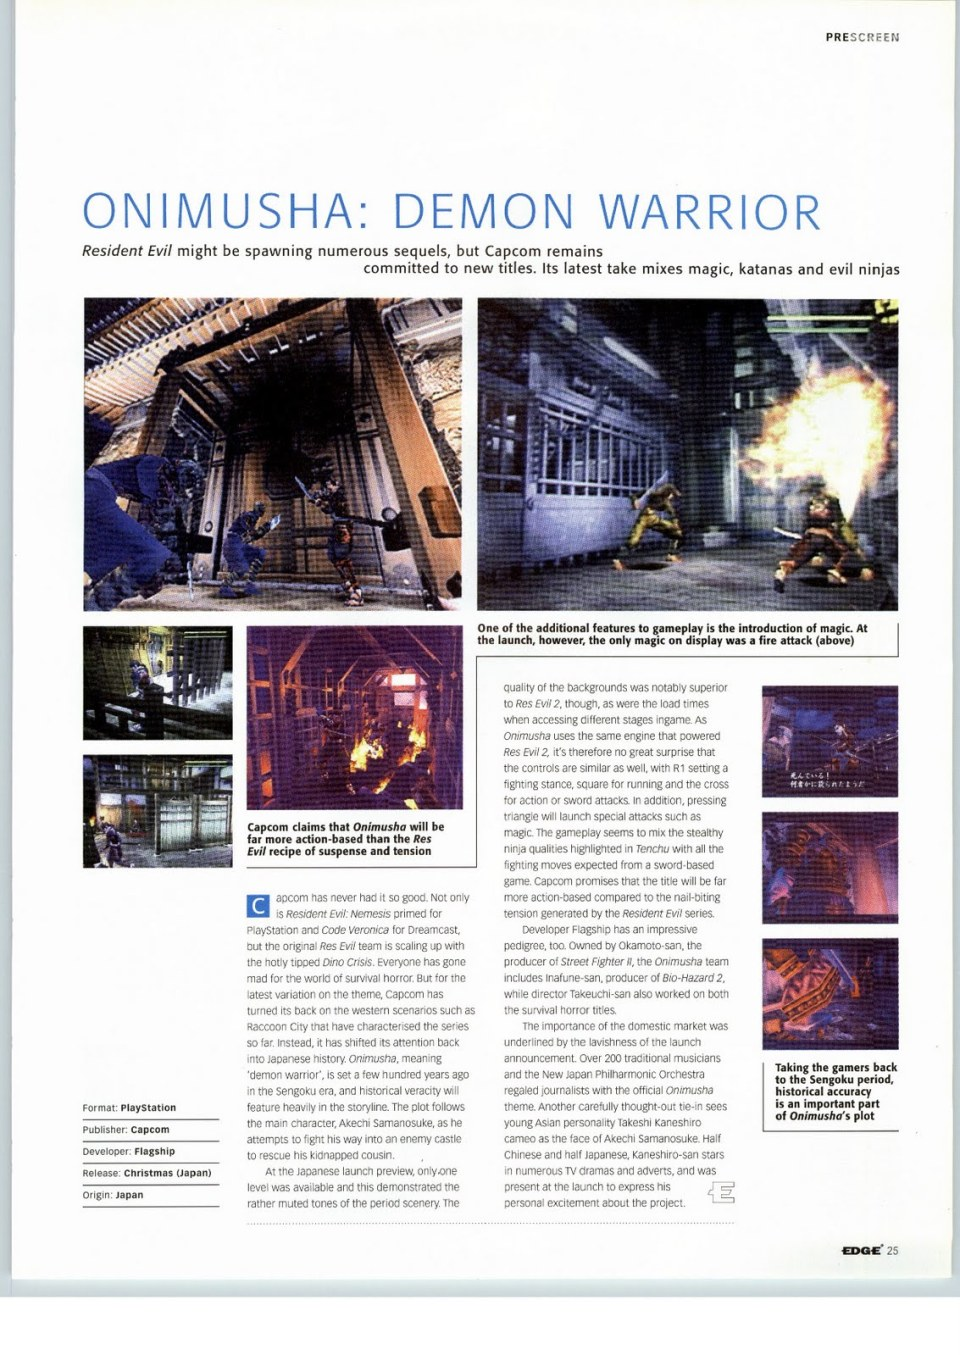 EDGE - 073 (July '99)_Page_025